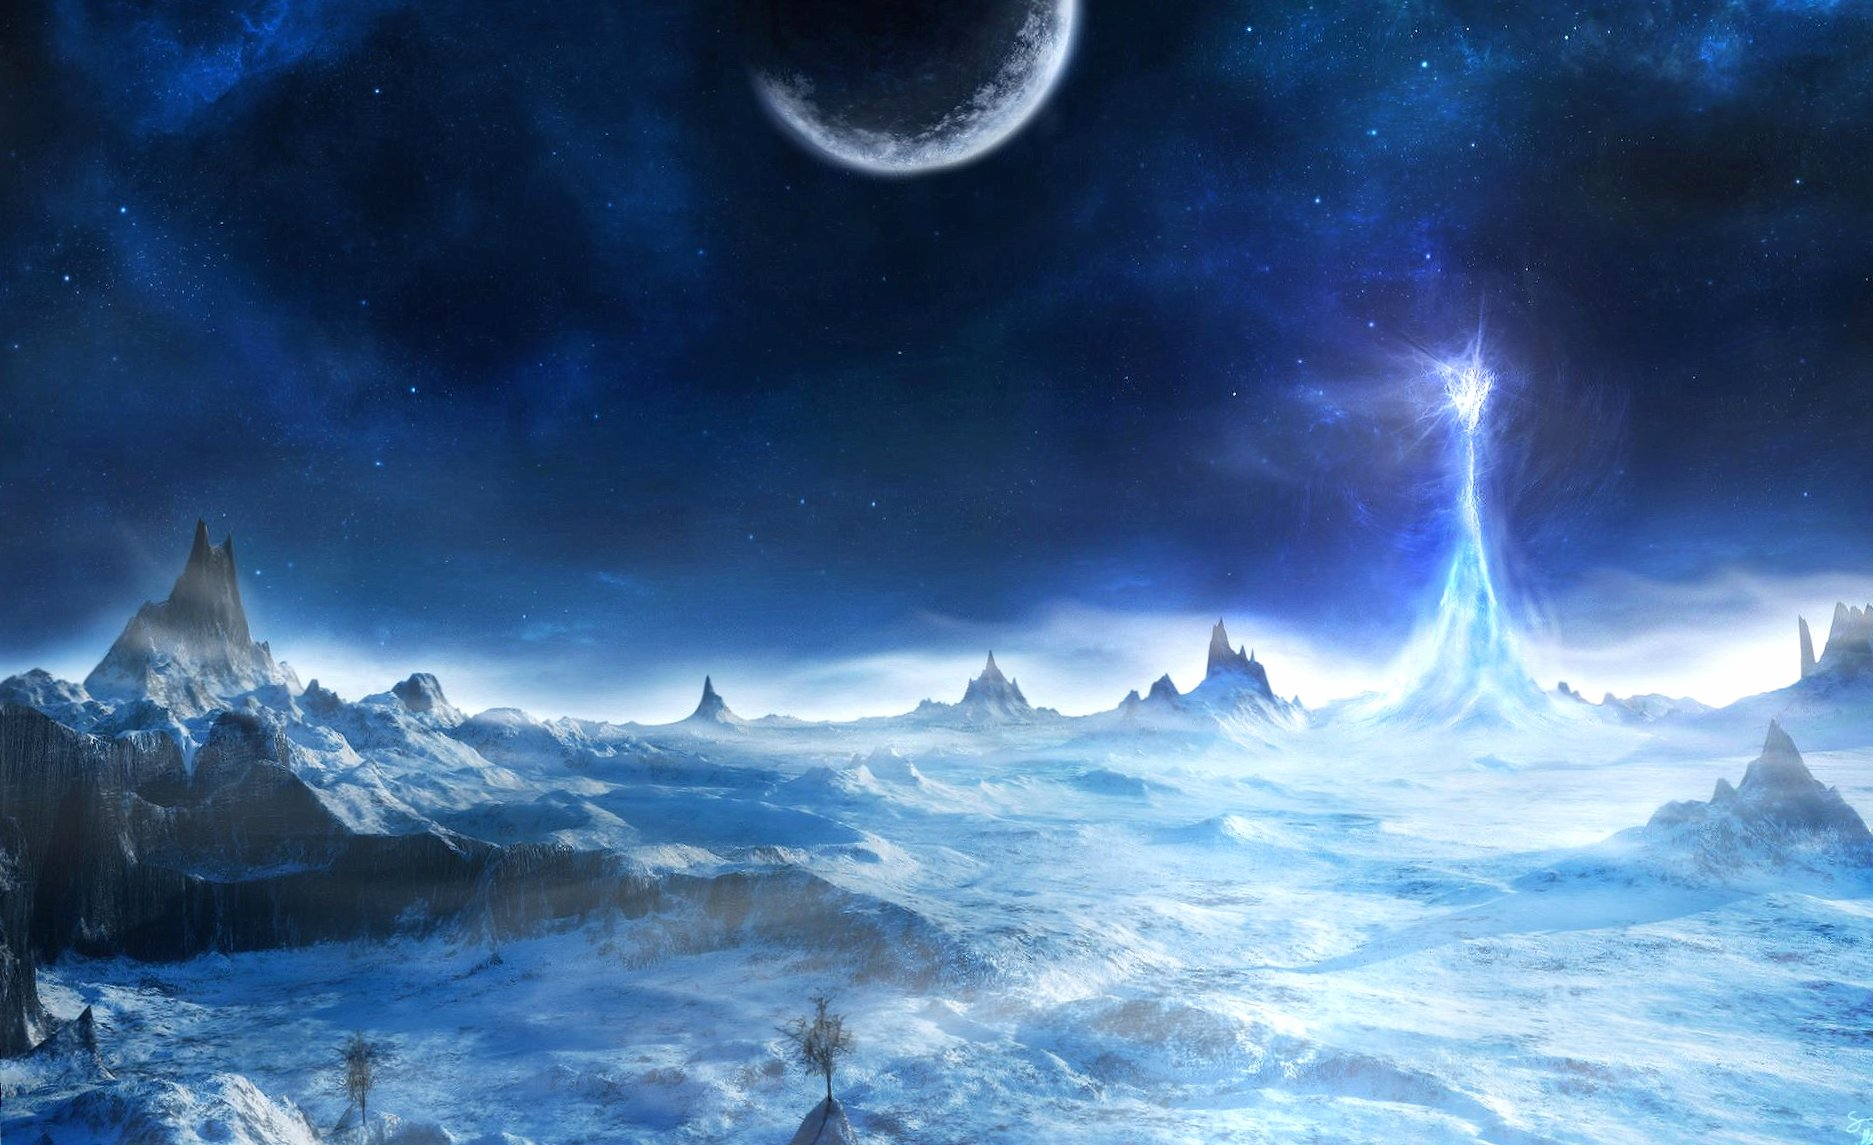 Iced planet wallpapers HD quality